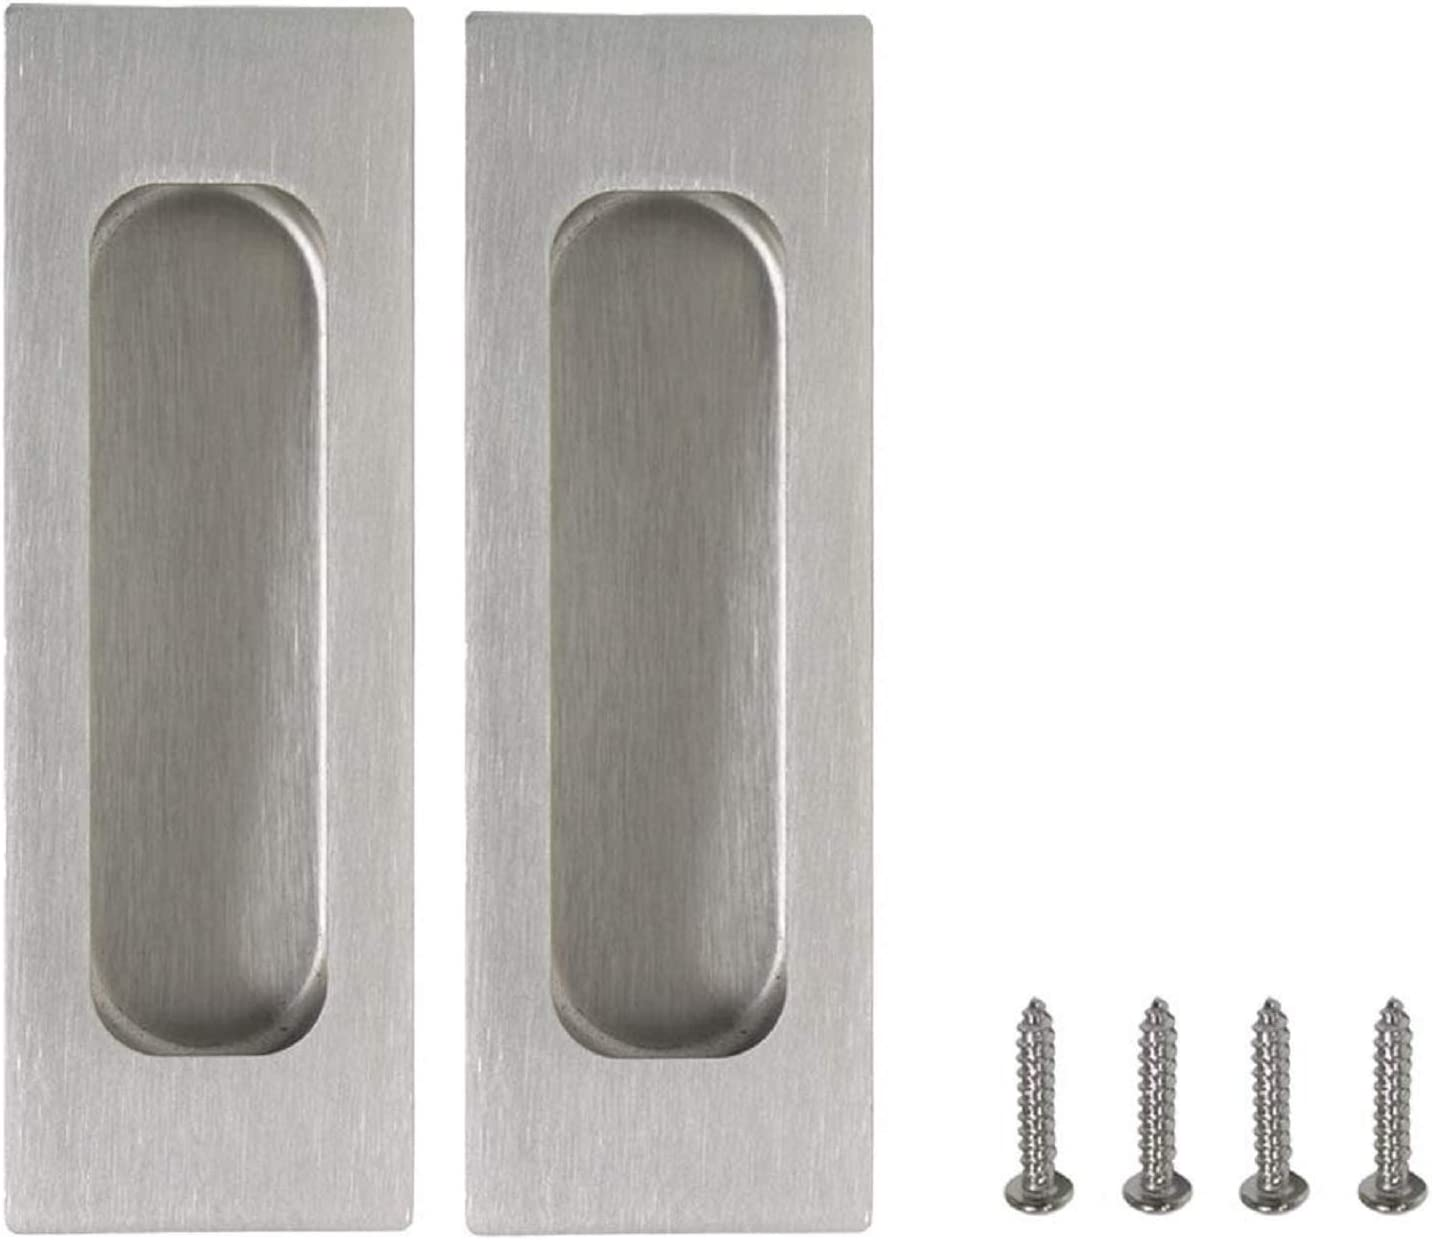 2 Pieces Brushed Nickel Sliding Door Pull Handle Rectangular Recessed Barn Door Pull Embedded Finger Pull with Hidden Screws